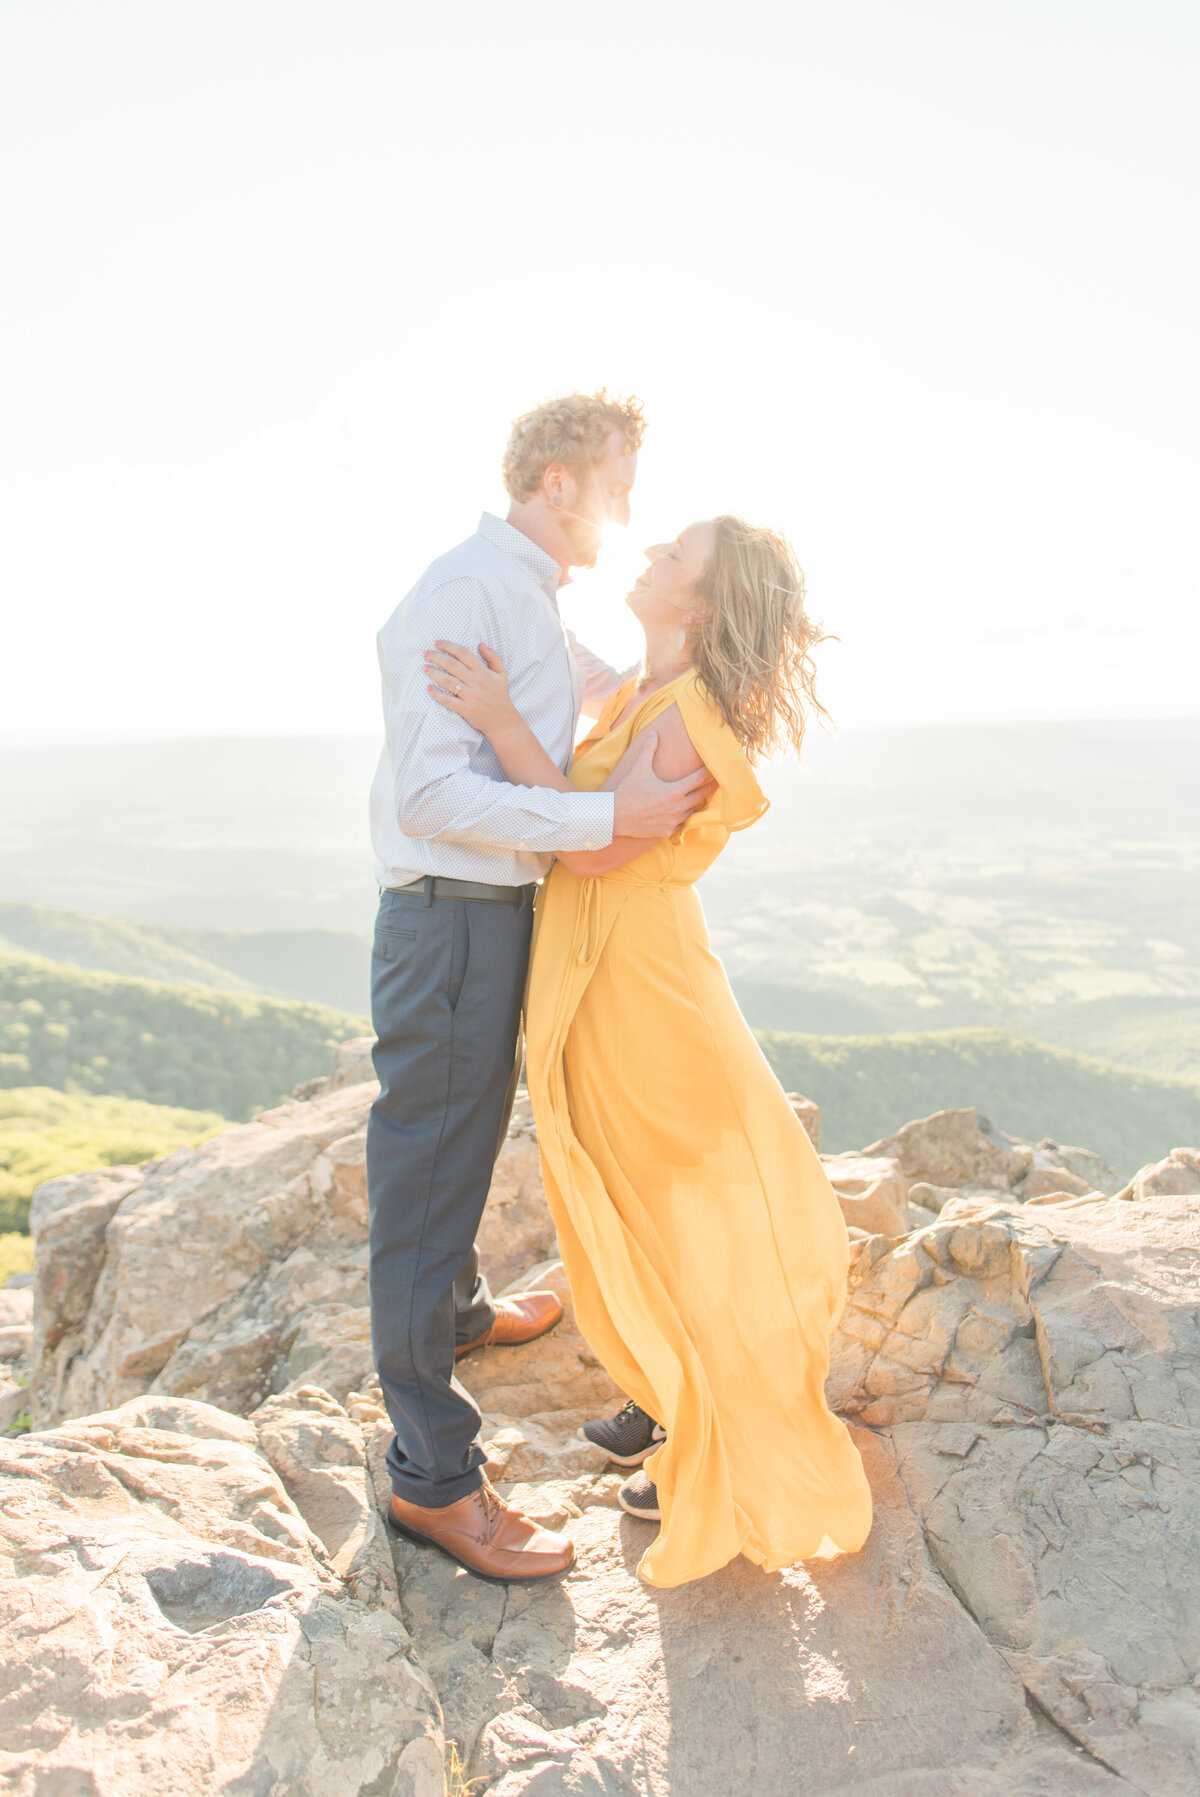 shenandoah-national-park-engagement-carmen-may-photography-1286